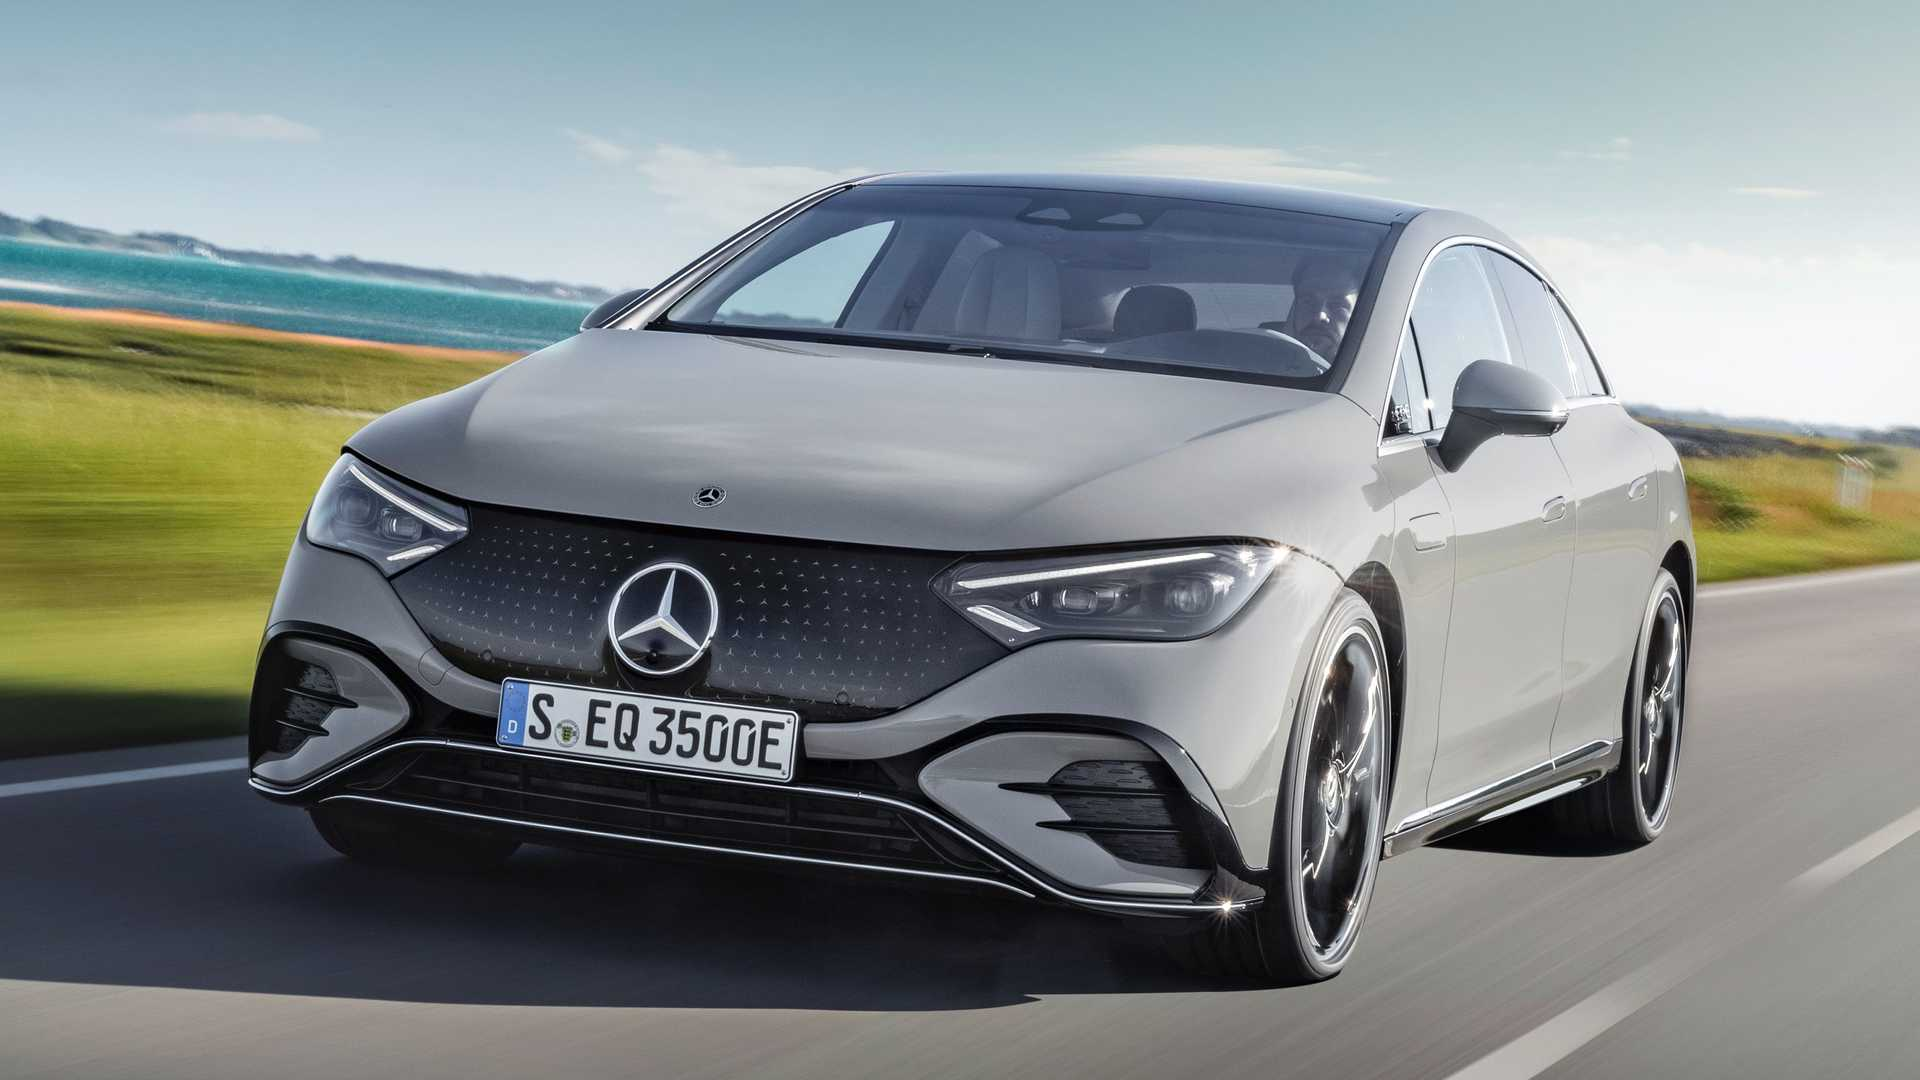 Mercedes-Benz now has a worthy rival to the Porsche Taycan, Tesla Model S, Audi e-tron GT, BMW i4, and Lucid Air on its lineup. Here is what it looks like.